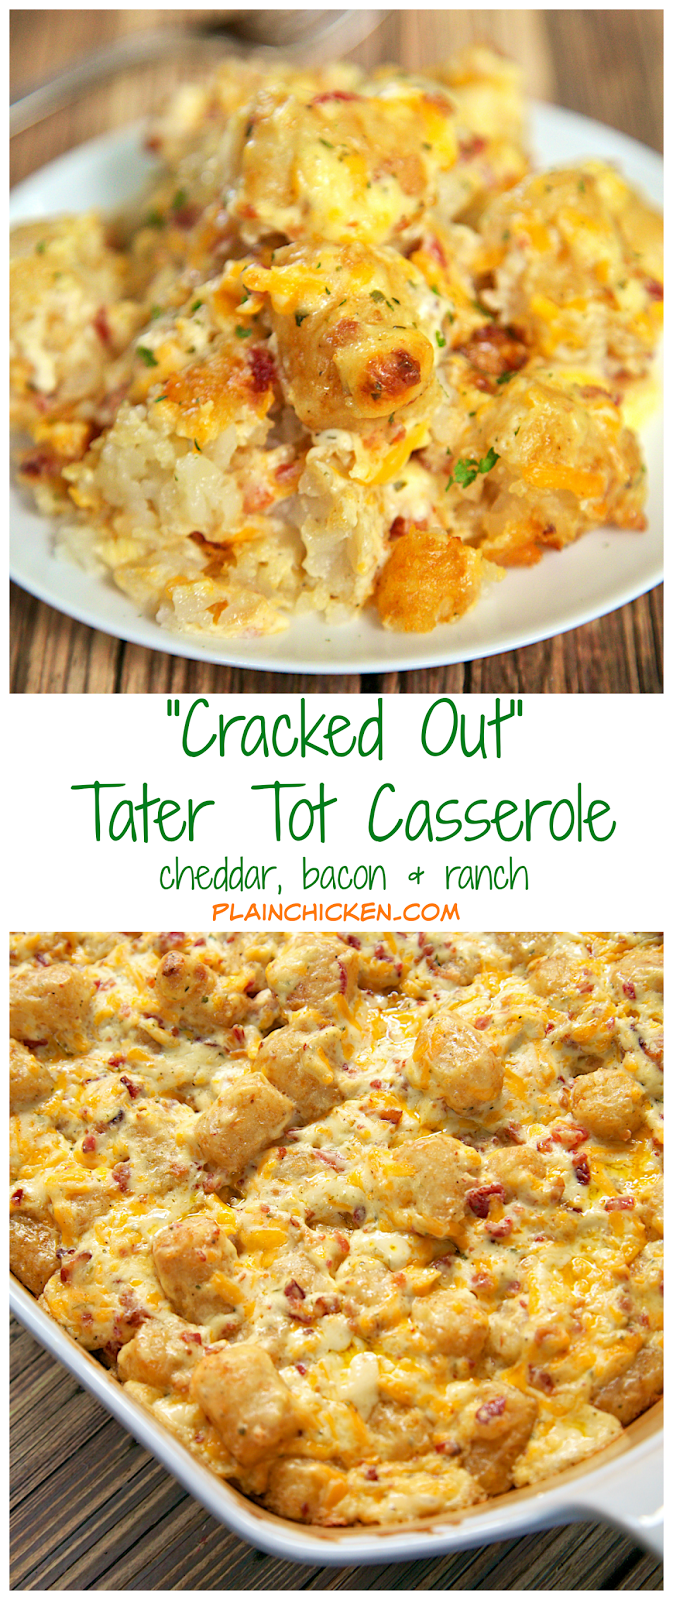 Quot Cracked Out Quot Tater Tot Casserole Recipe Easy Cheddar